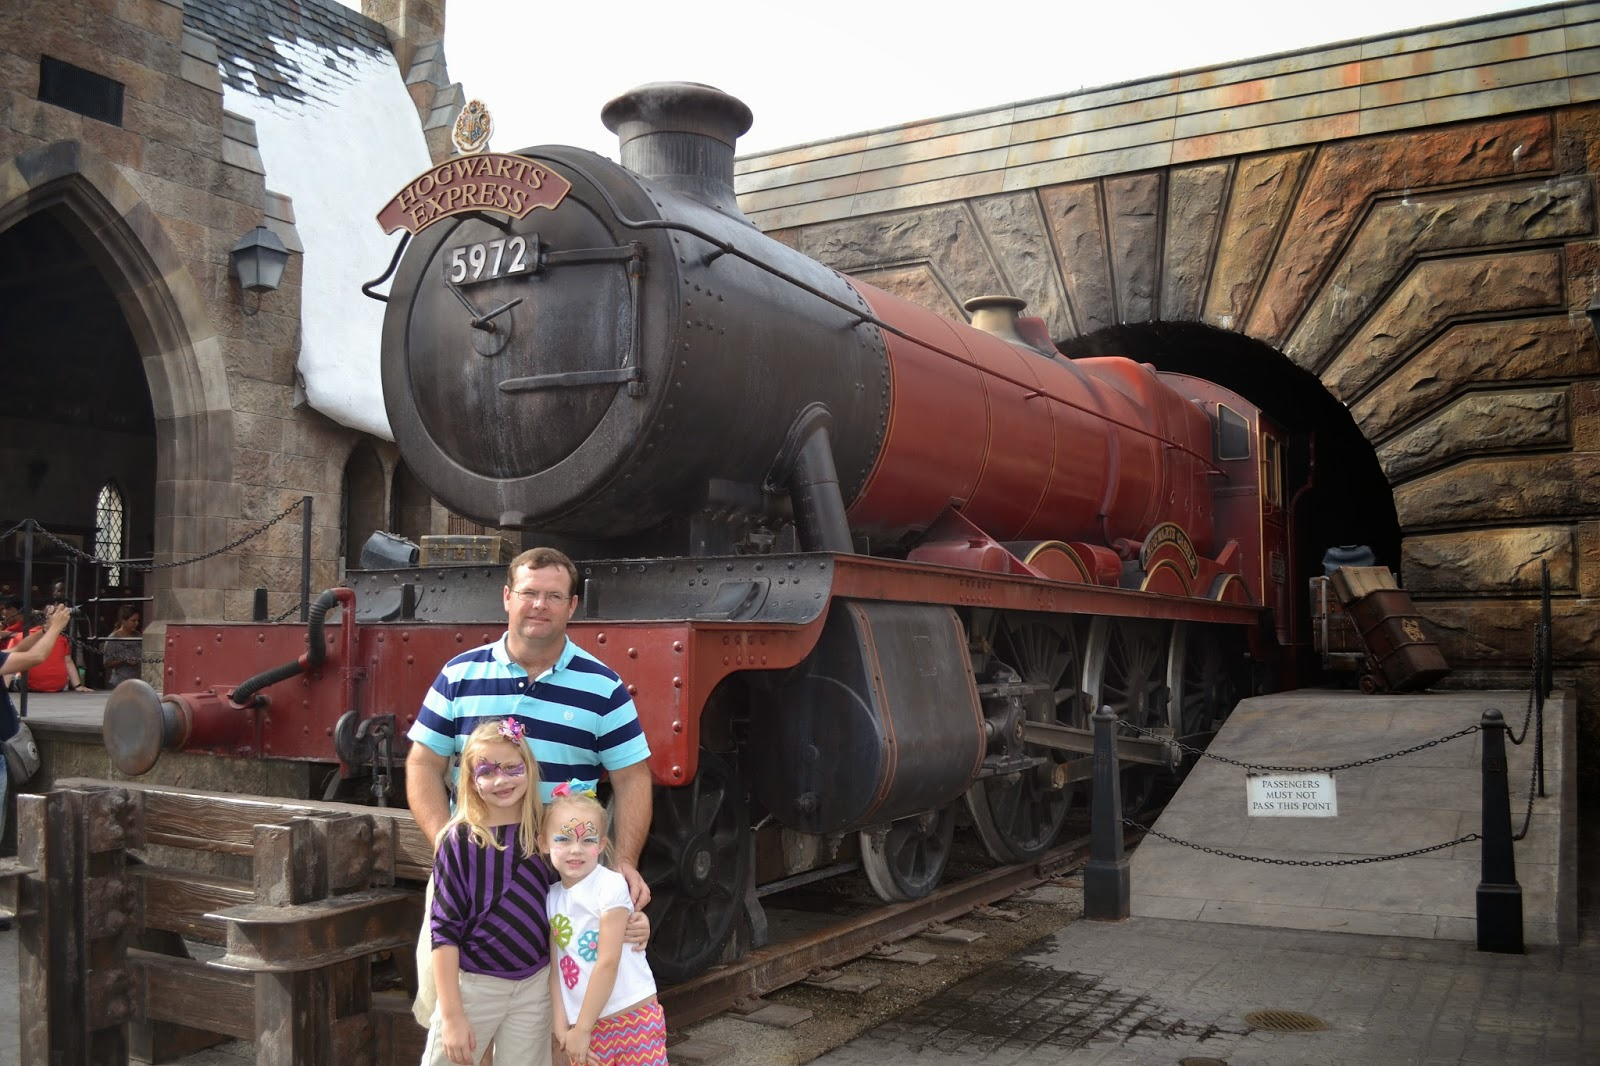 The Train at Universal - Islands of Adventure